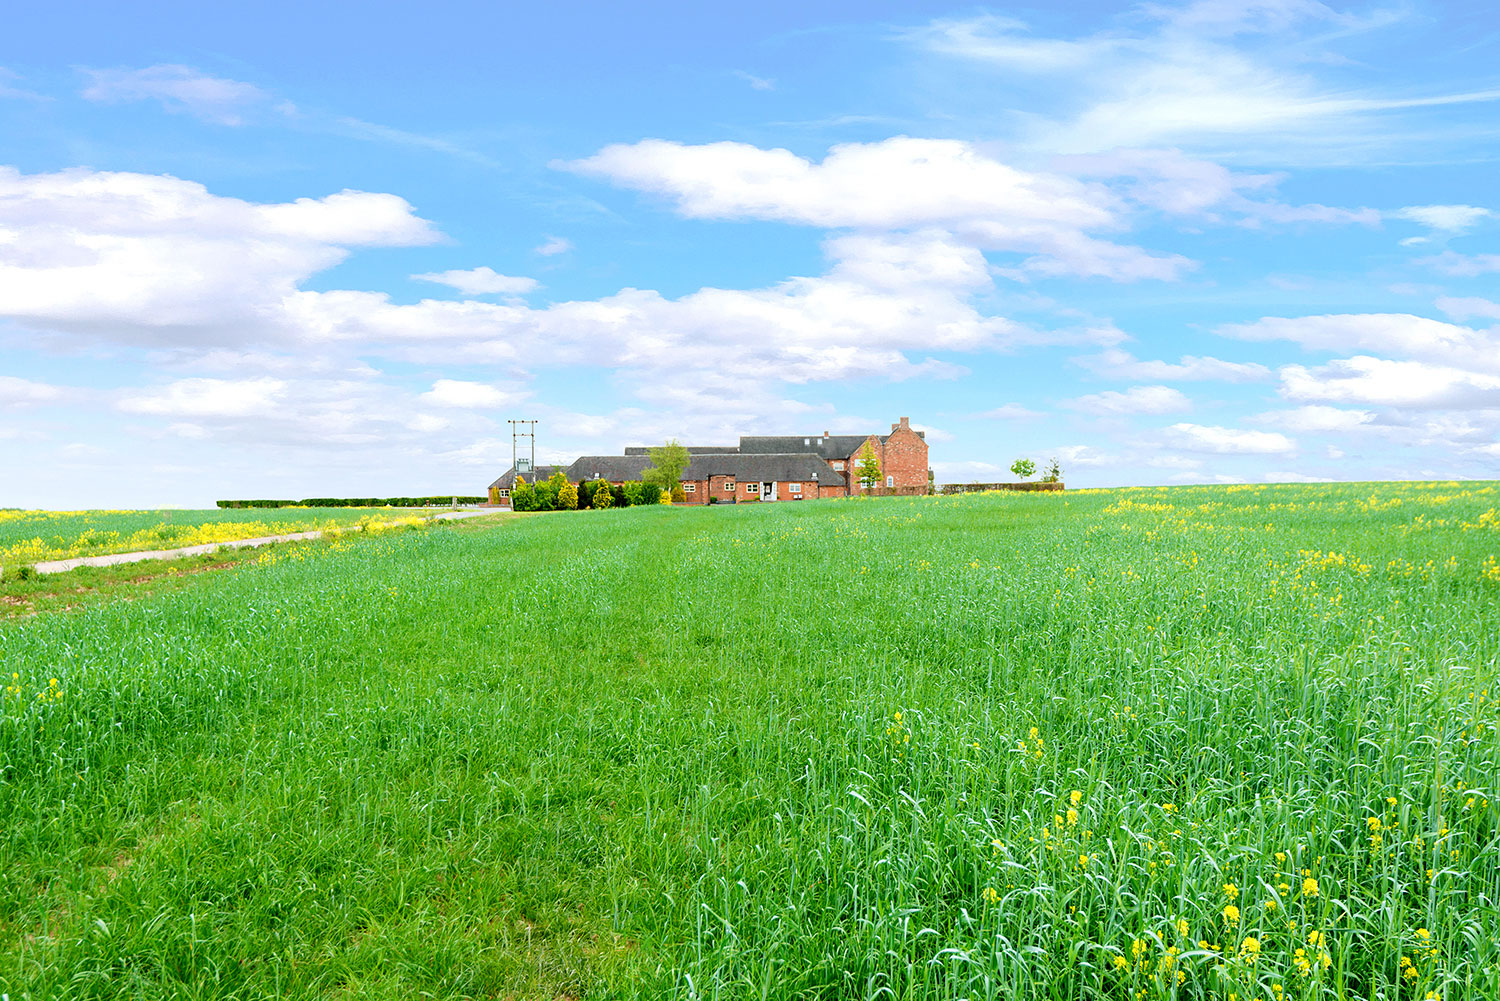 Holiday accommodation set in the rolling cornfields of Leicestershire | Upper Rectory Farm Cottages